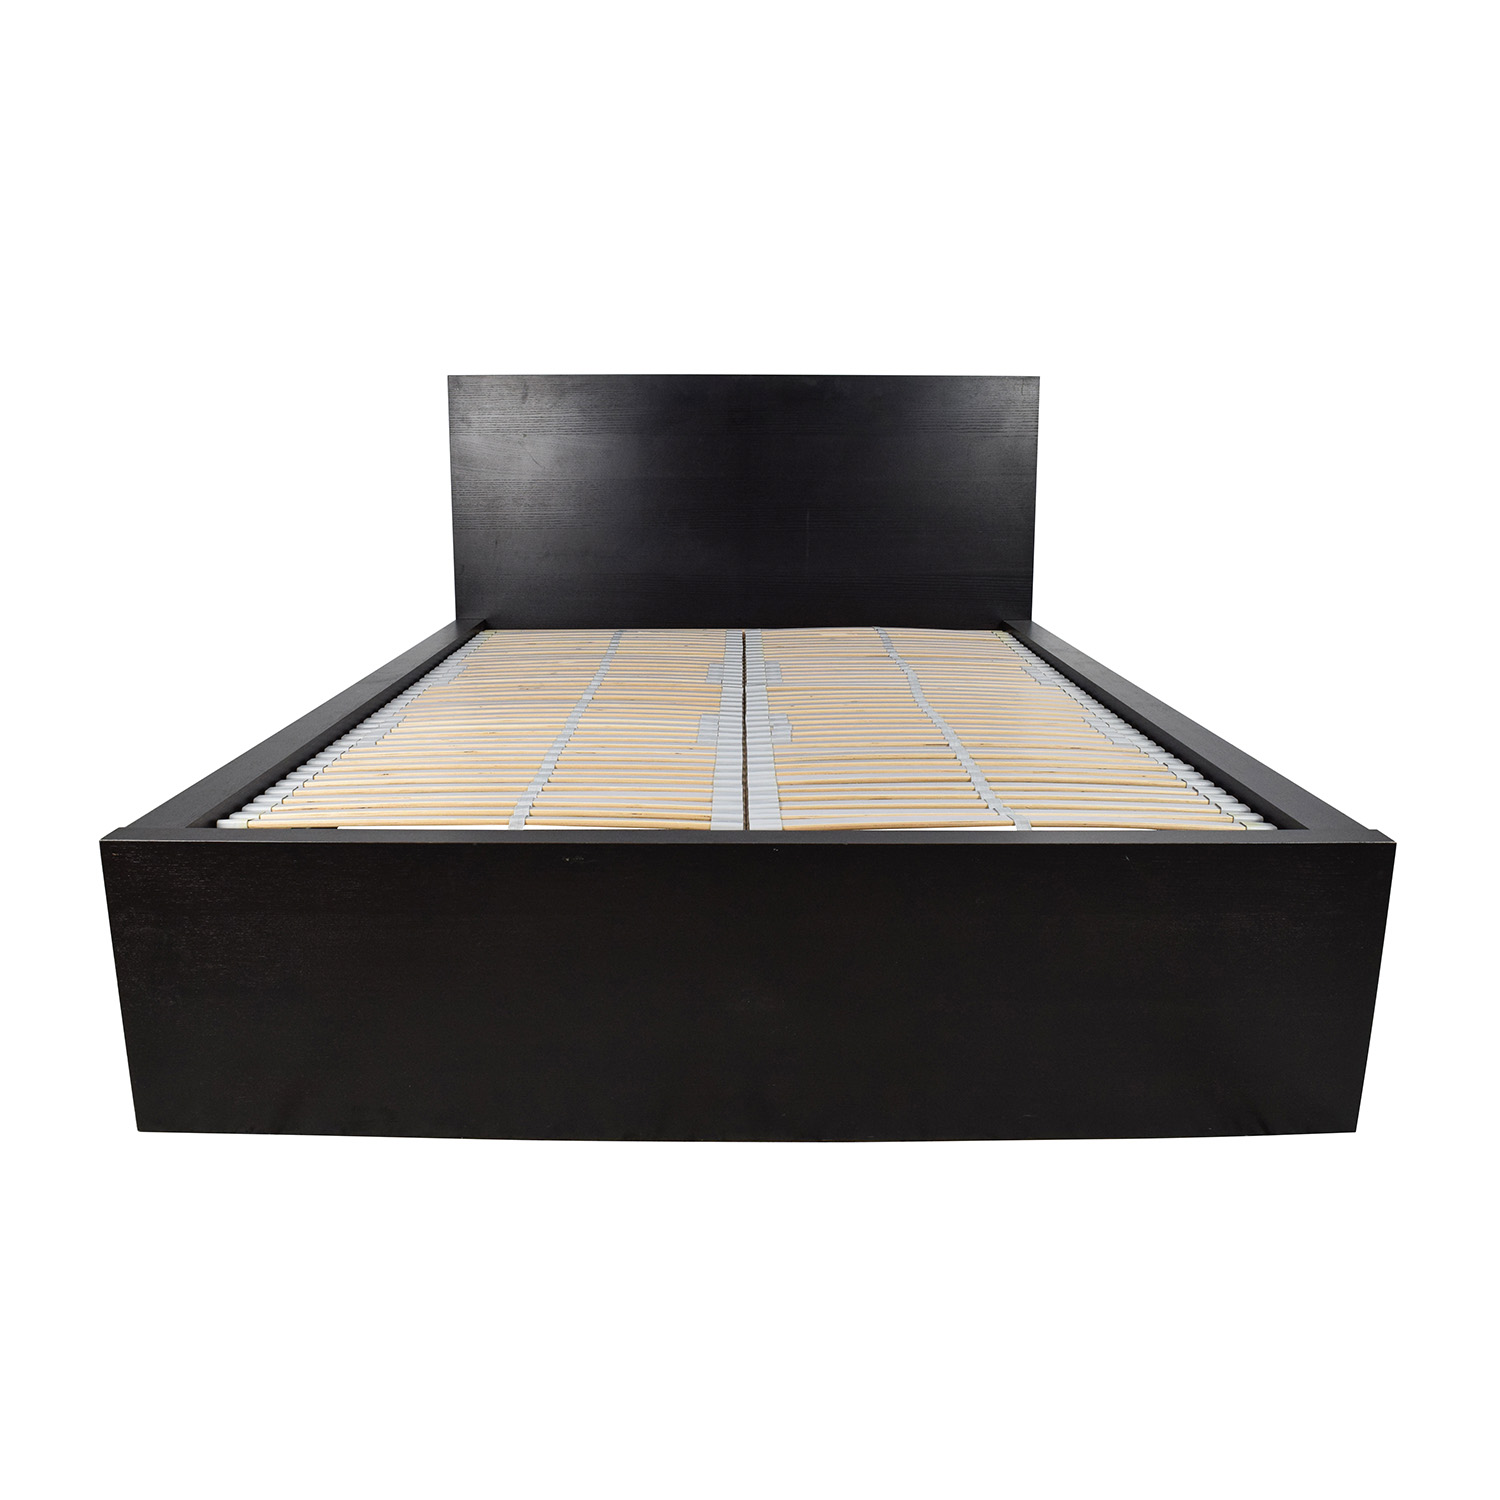 IKEA IKEA Full Bed Frame with Adjustable Slats Beds